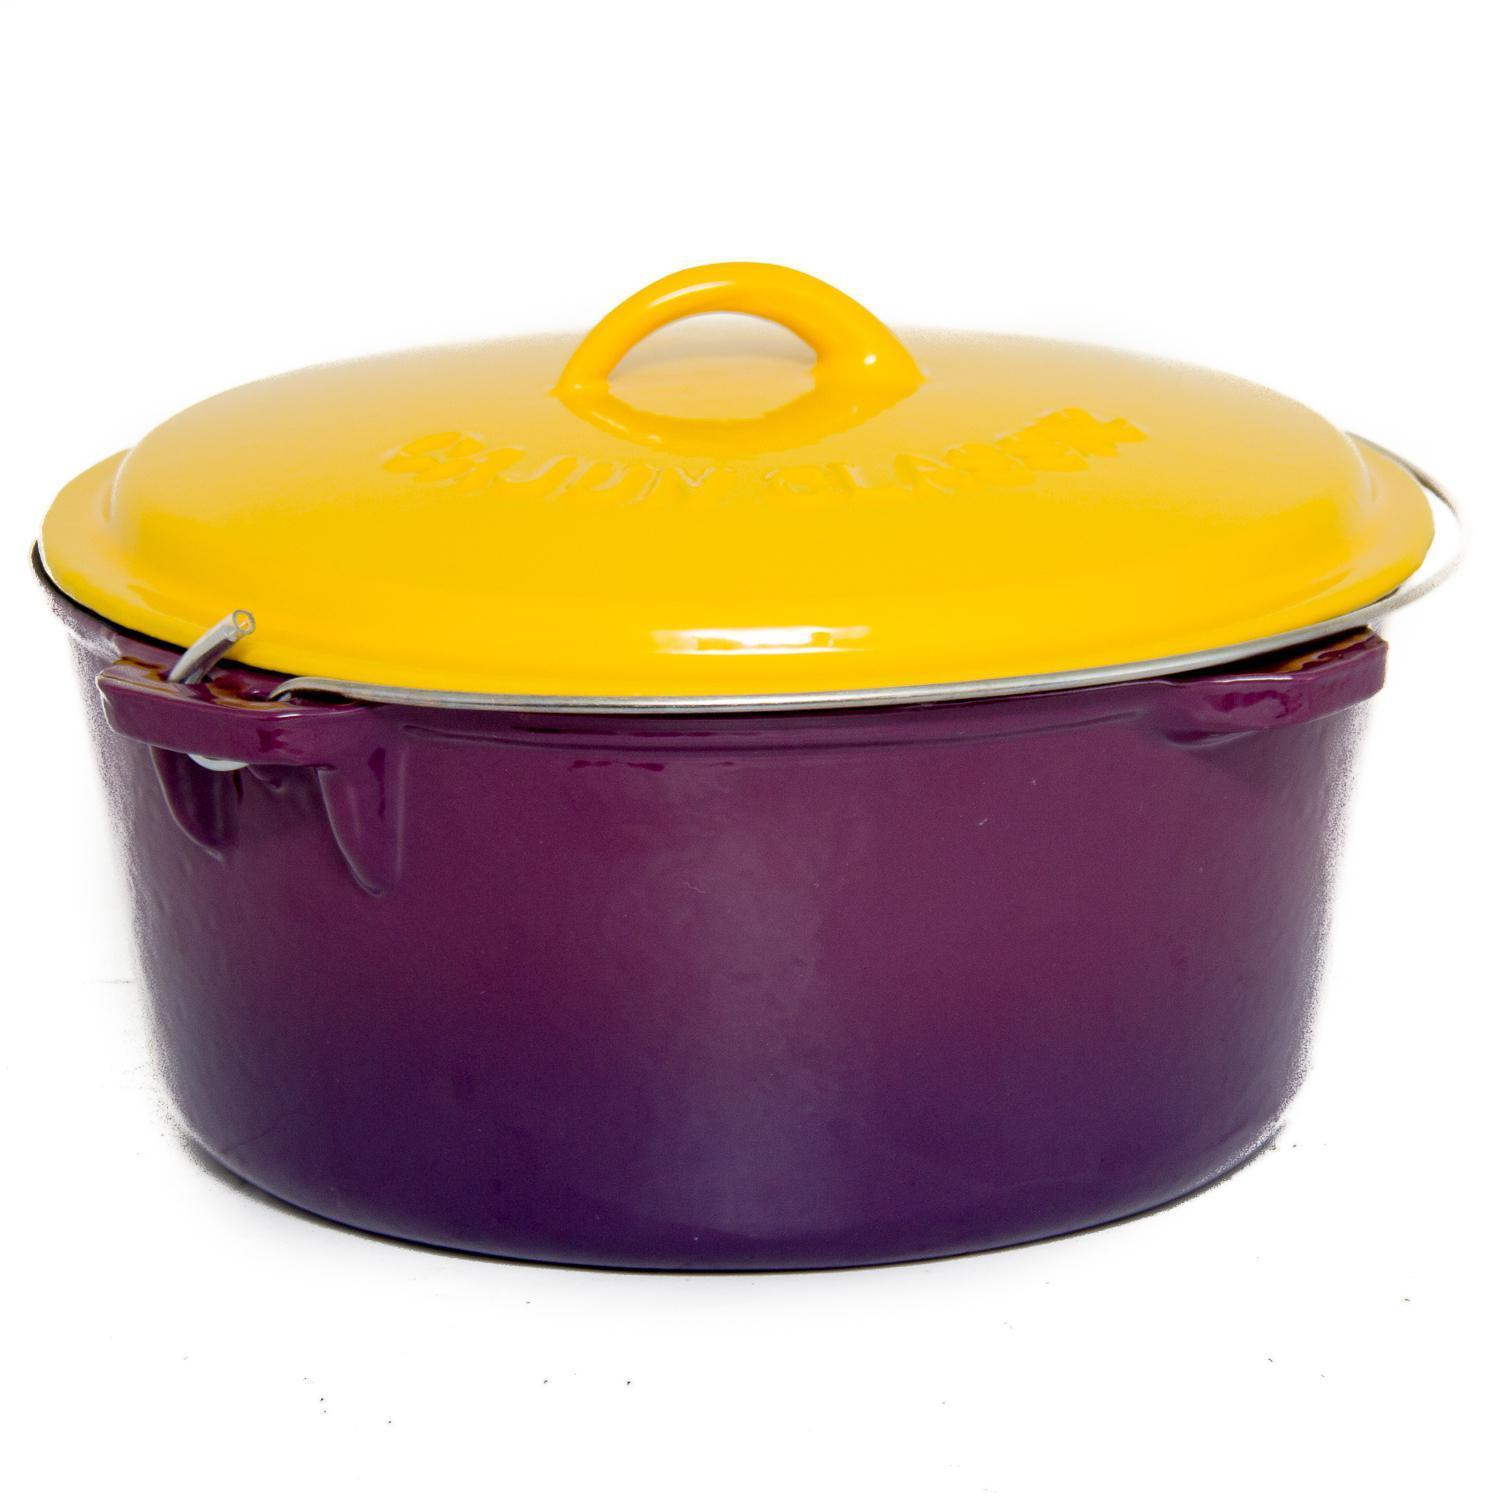 Cheap cajun cookware dutch ovens 6 quart seasoned cast iron dutch oven - Cajun Cookware 16 Quart Enamel Cast Iron Purple